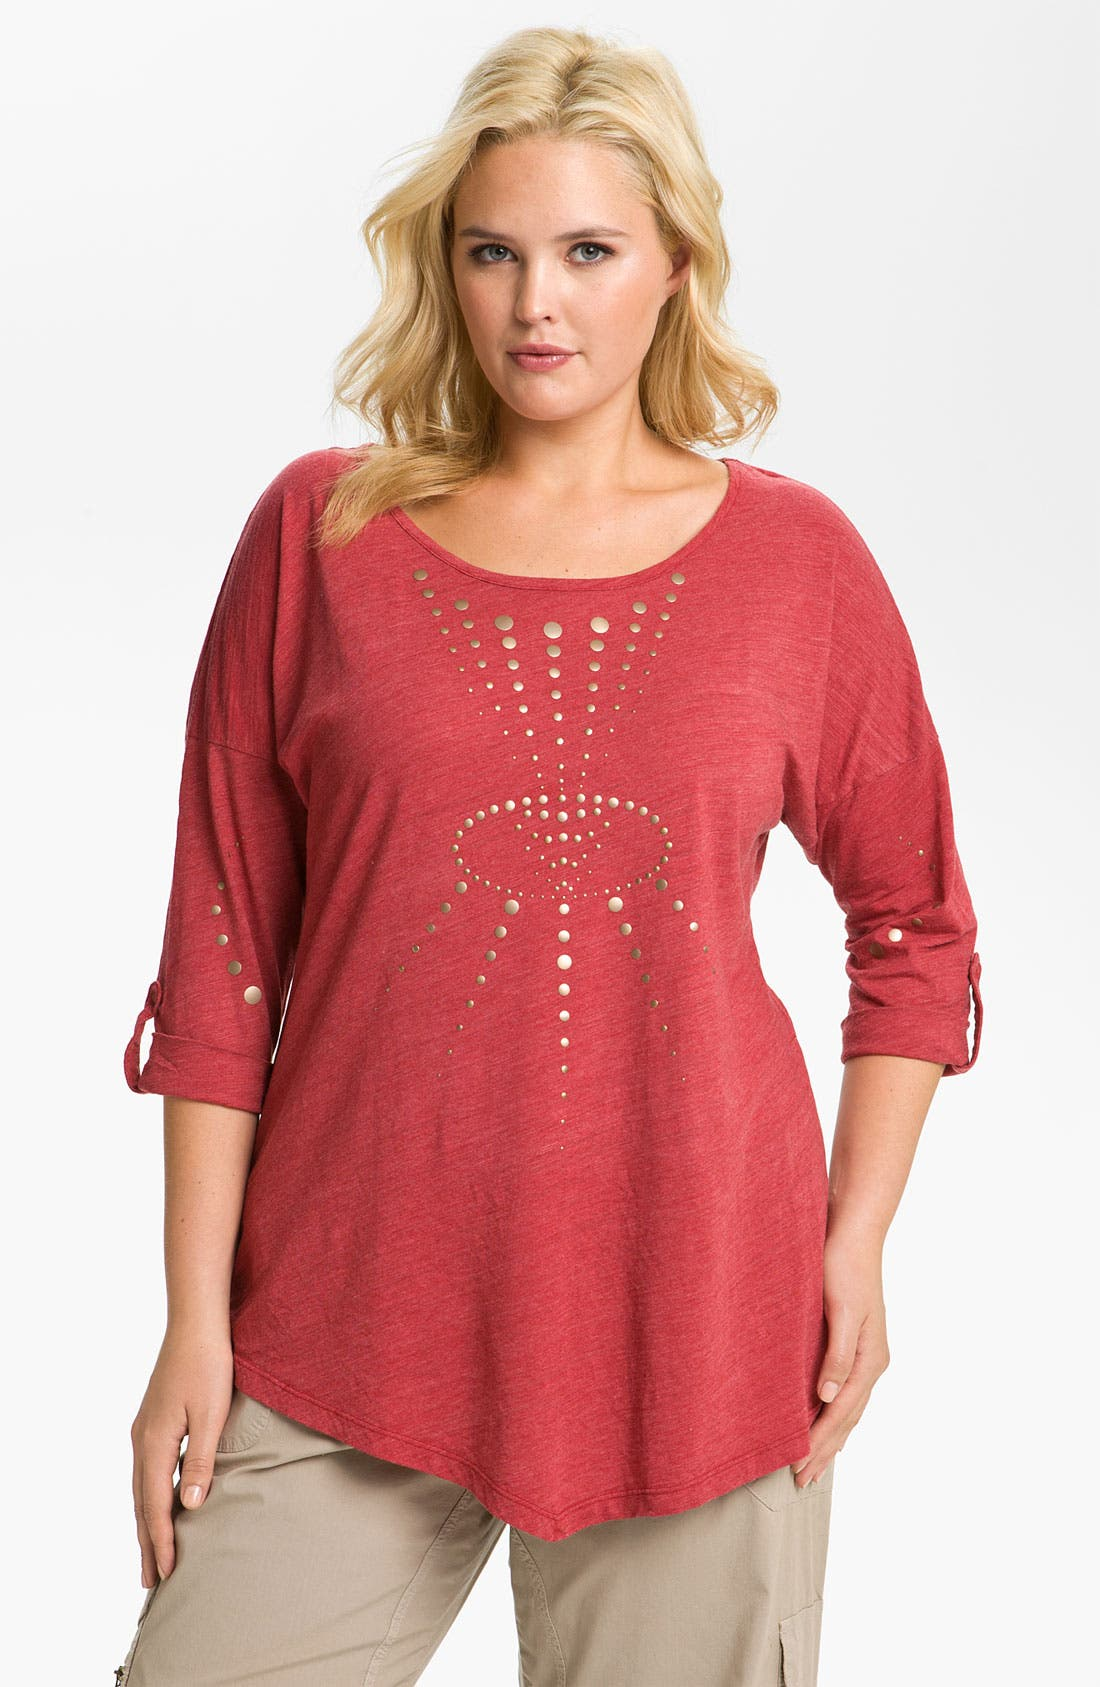 Alternate Image 1 Selected - XCVI Wearables 'O'Brien' Embellished Tunic (Plus)